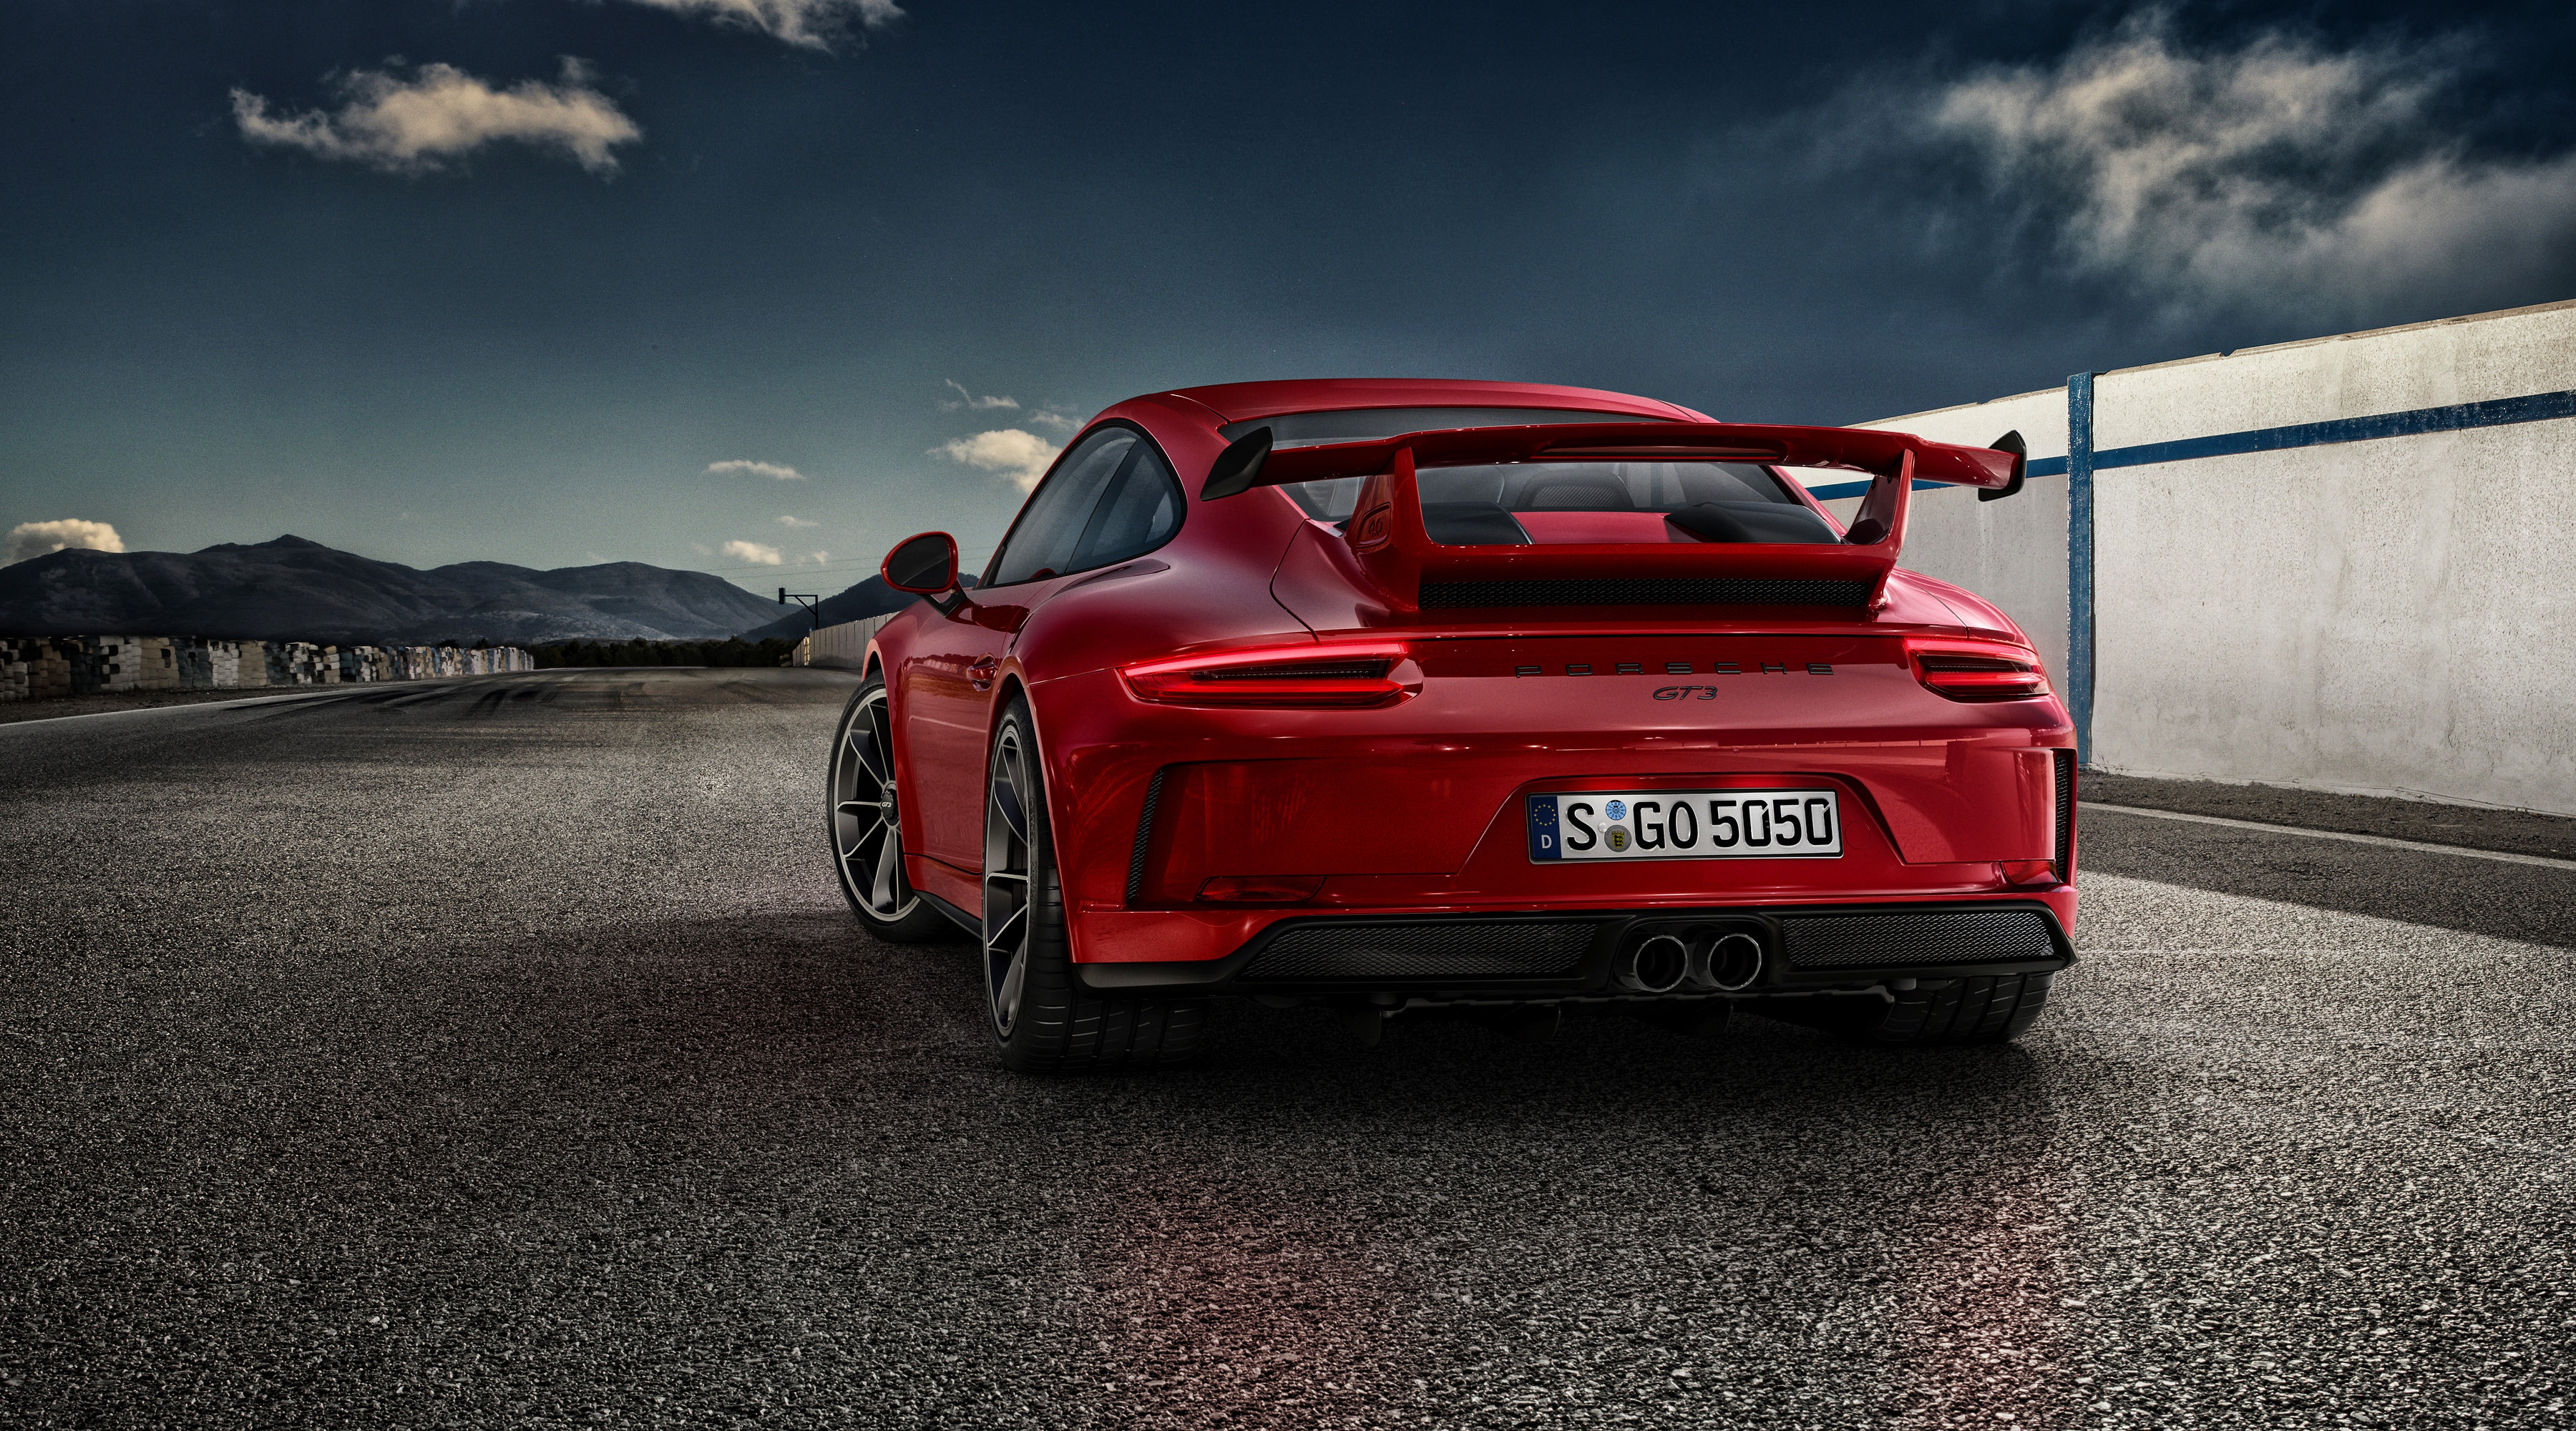 2017 Porsche 911 GT3, HD Cars, 4k Wallpapers, Images